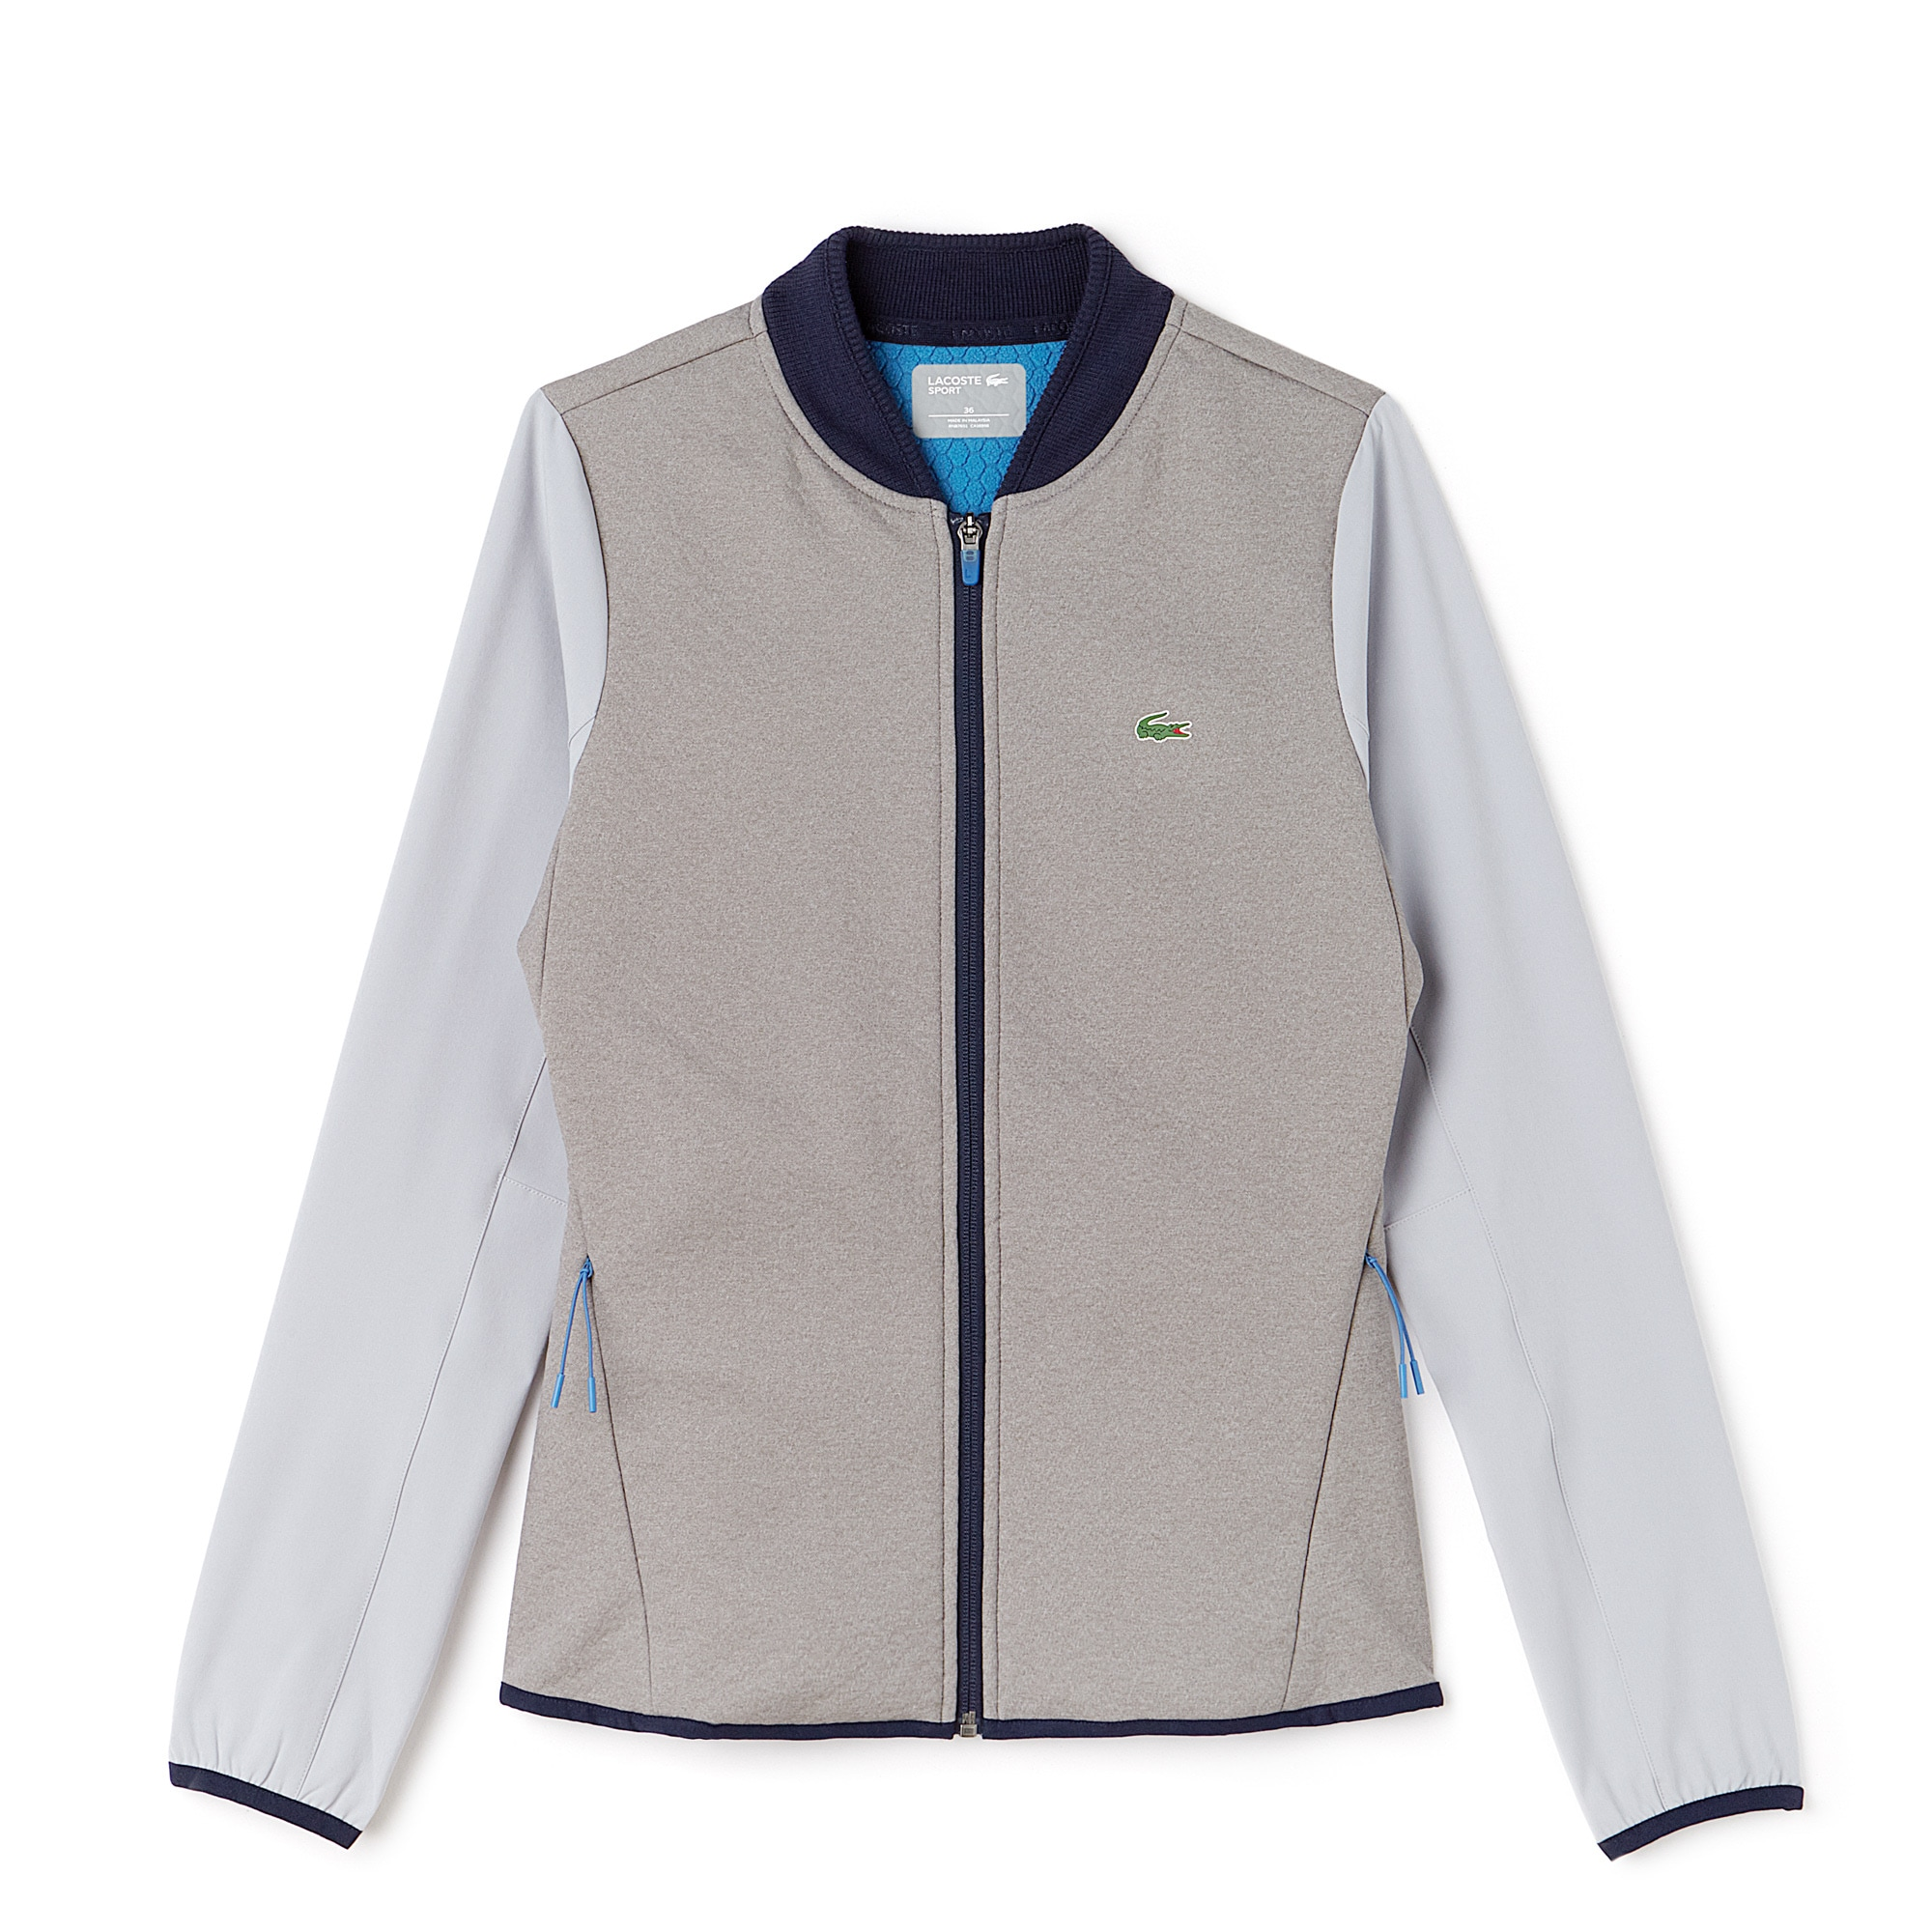 Women's Lacoste SPORT Water-Resistant Midlayer Zip Golf Sweatshirt